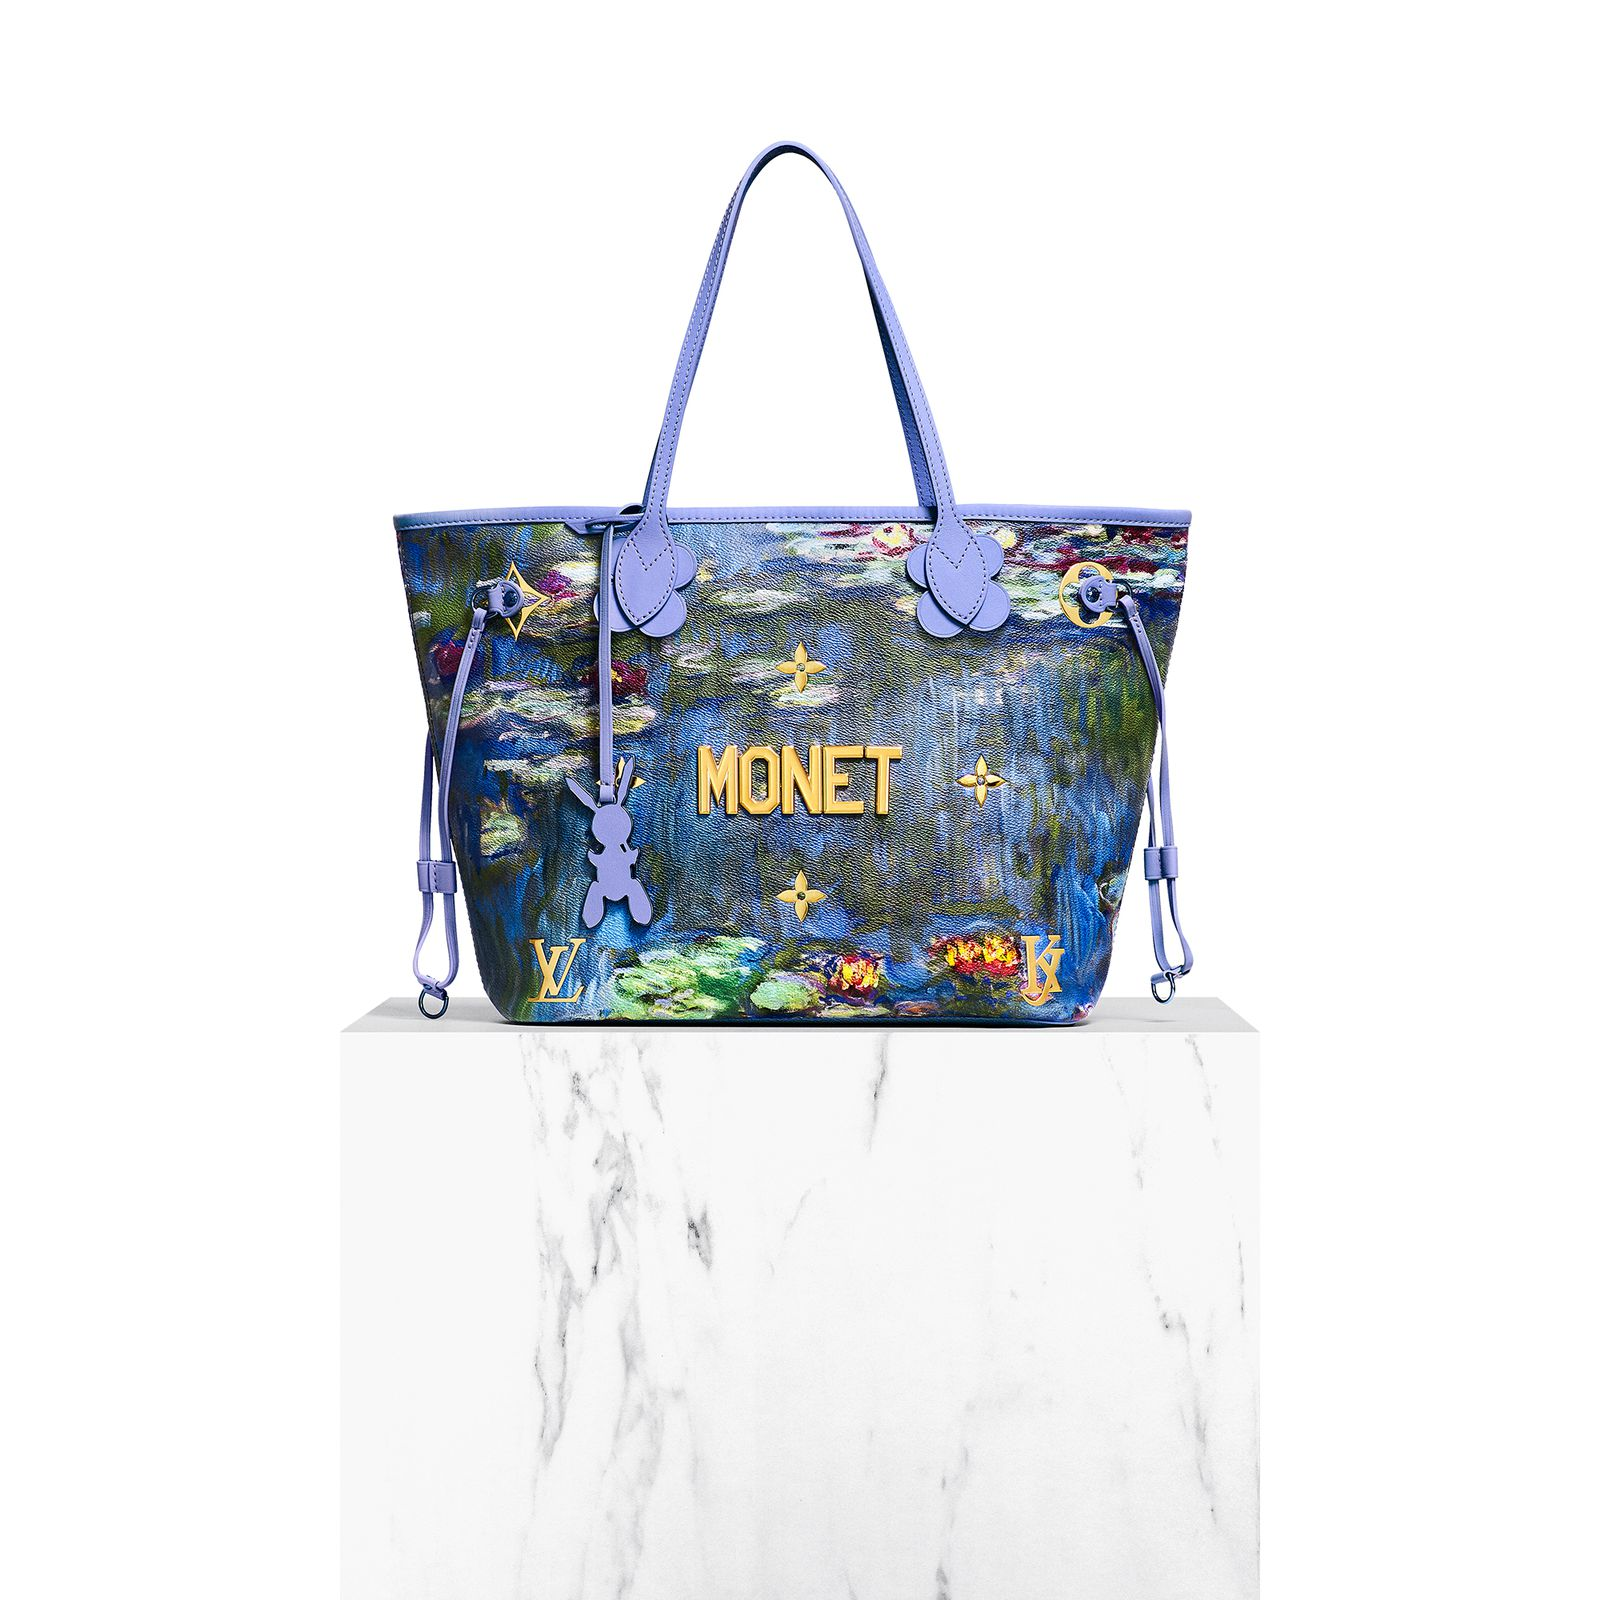 As With The First Chapter Of Masters Collection Jeff Koons Has Modified Famous Louis Vuitton Monogram Motif Its Initials